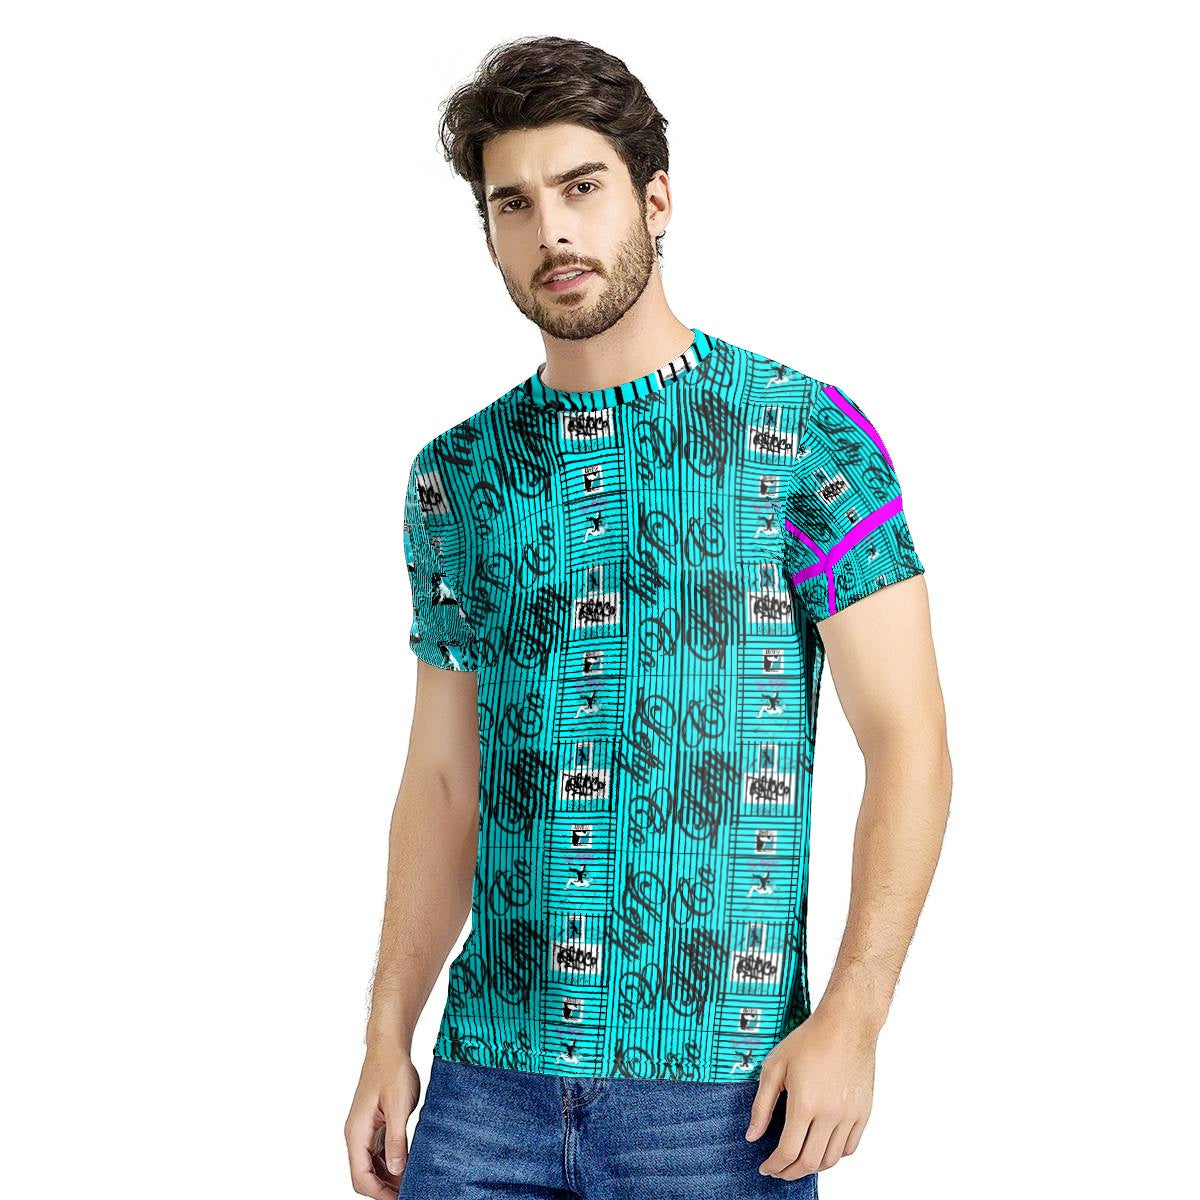 LeftyCo - 812 Electric Teal/Black Pinstripes T-shirt - leftyco